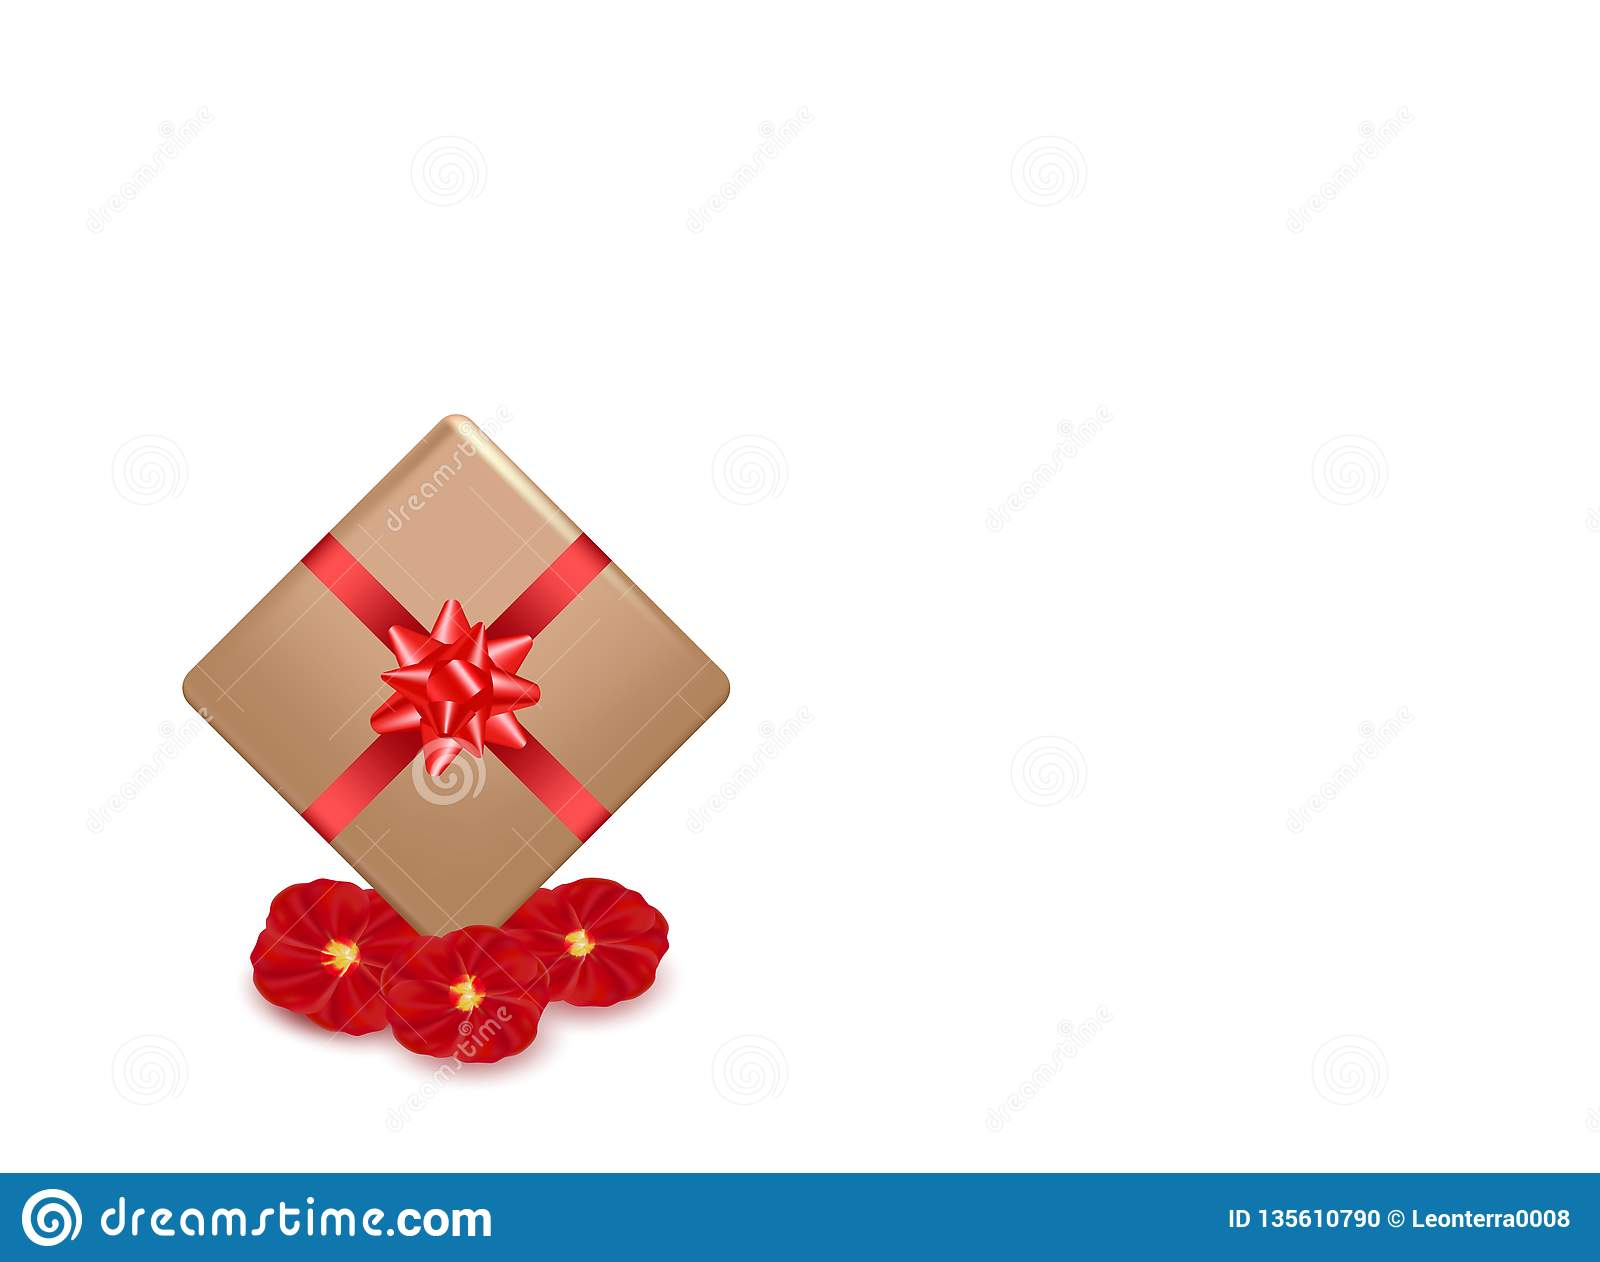 Gift box and red calligraphy stripe. Rose petals flowers. Valentines day greeting card design, 3d style on white background.